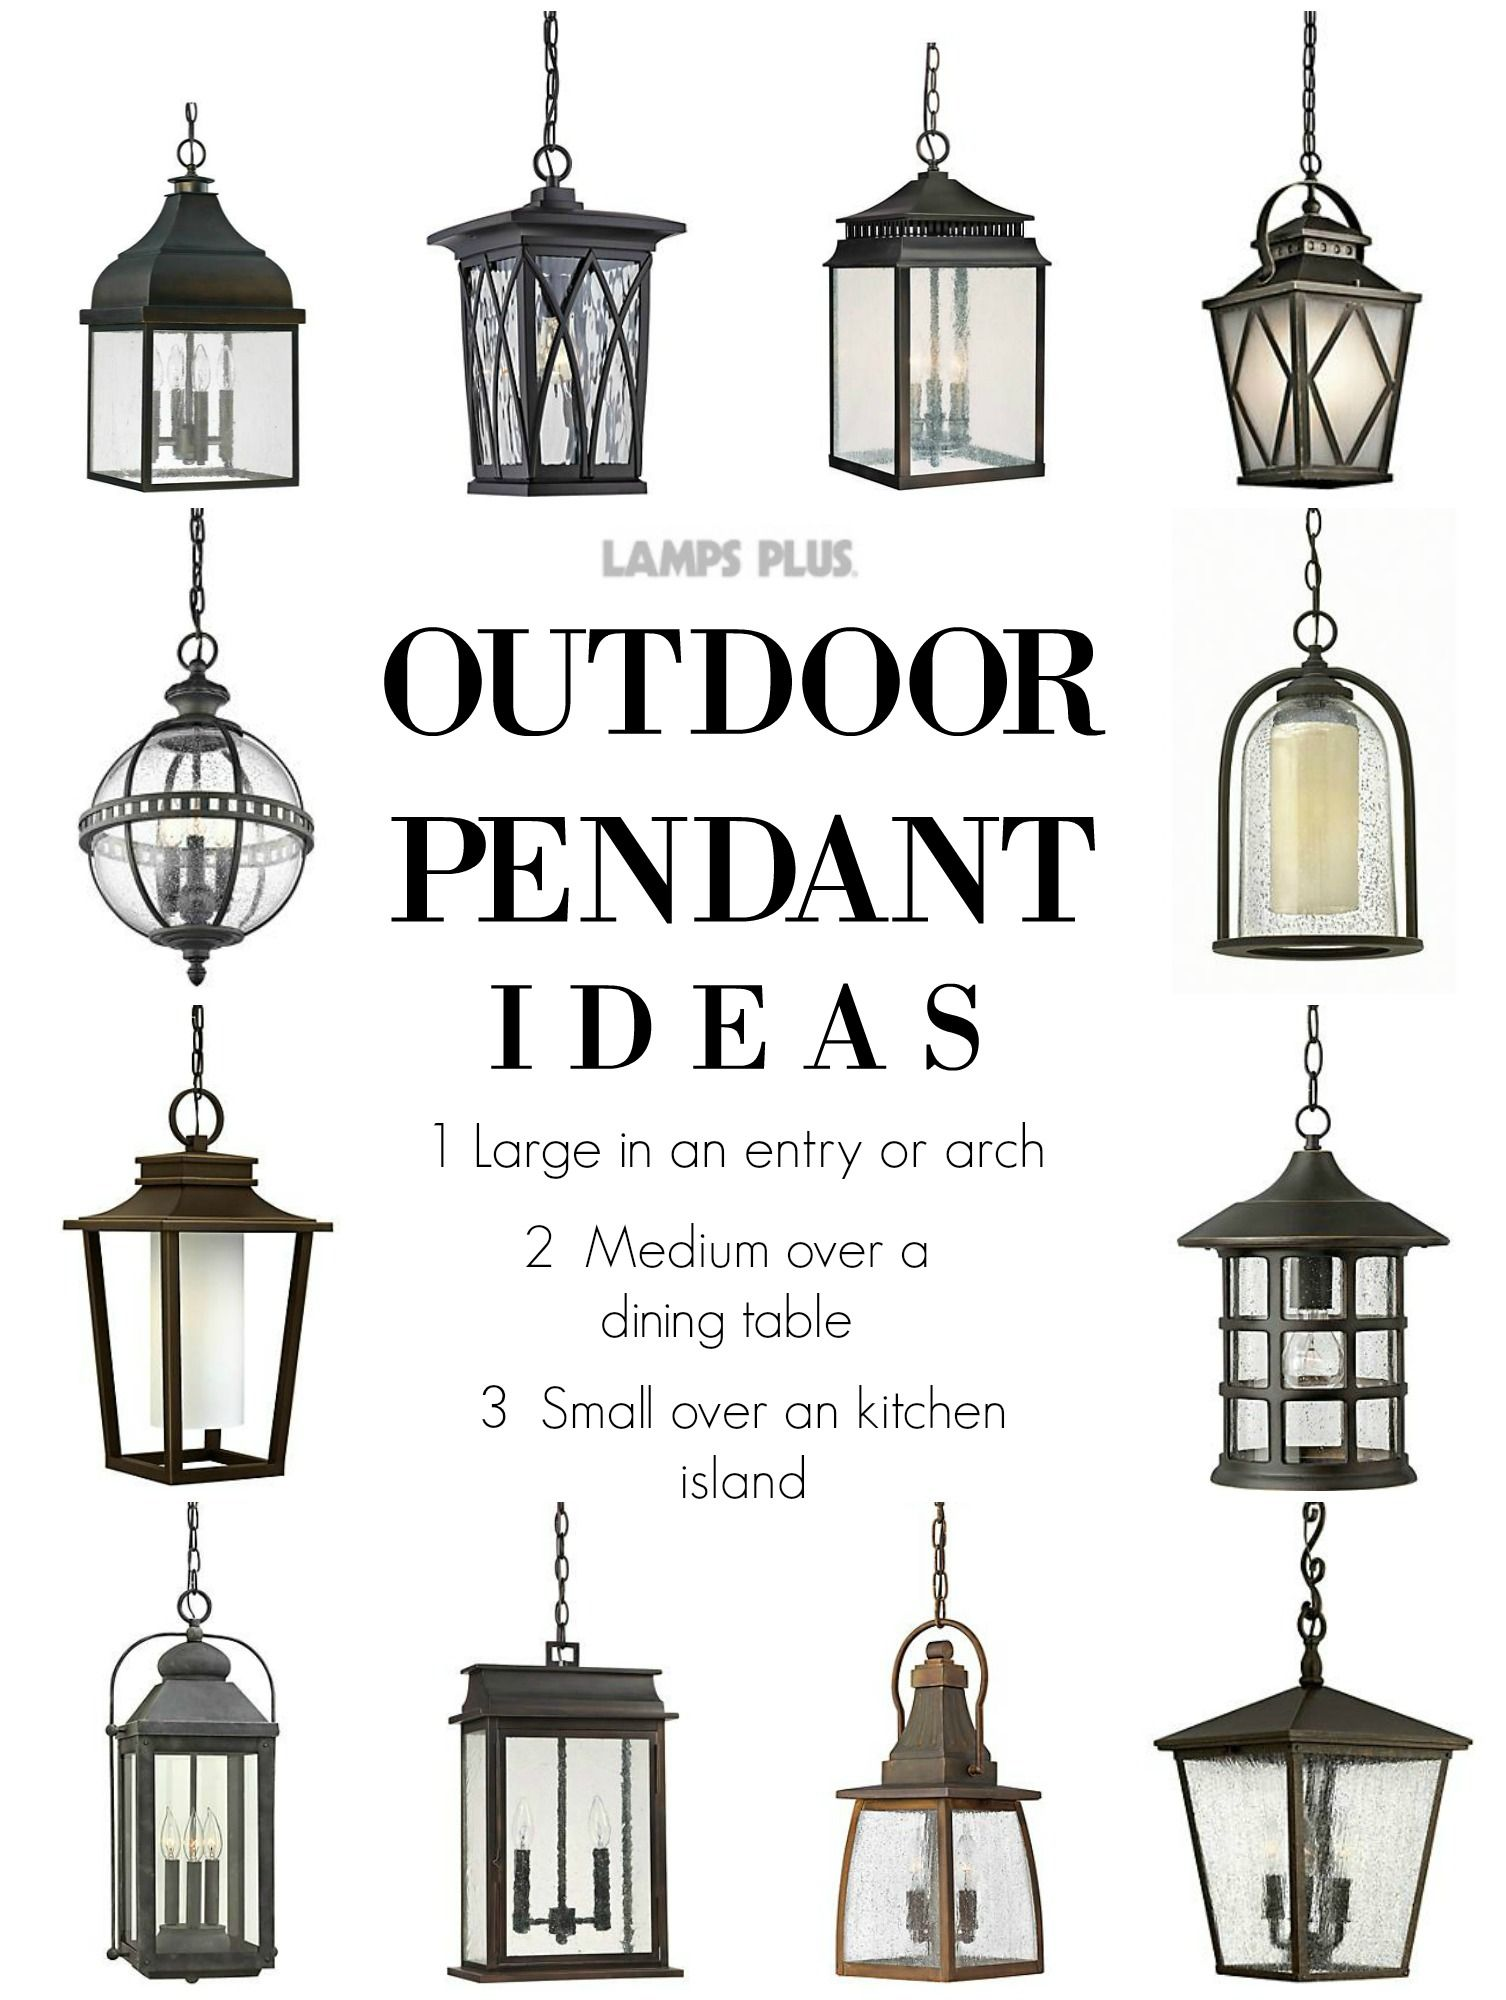 Pin by lynda focal point styling on outdoor living in 2018 heather reference this pin for lighting lower prices and more of what i am looking for aloadofball Choice Image